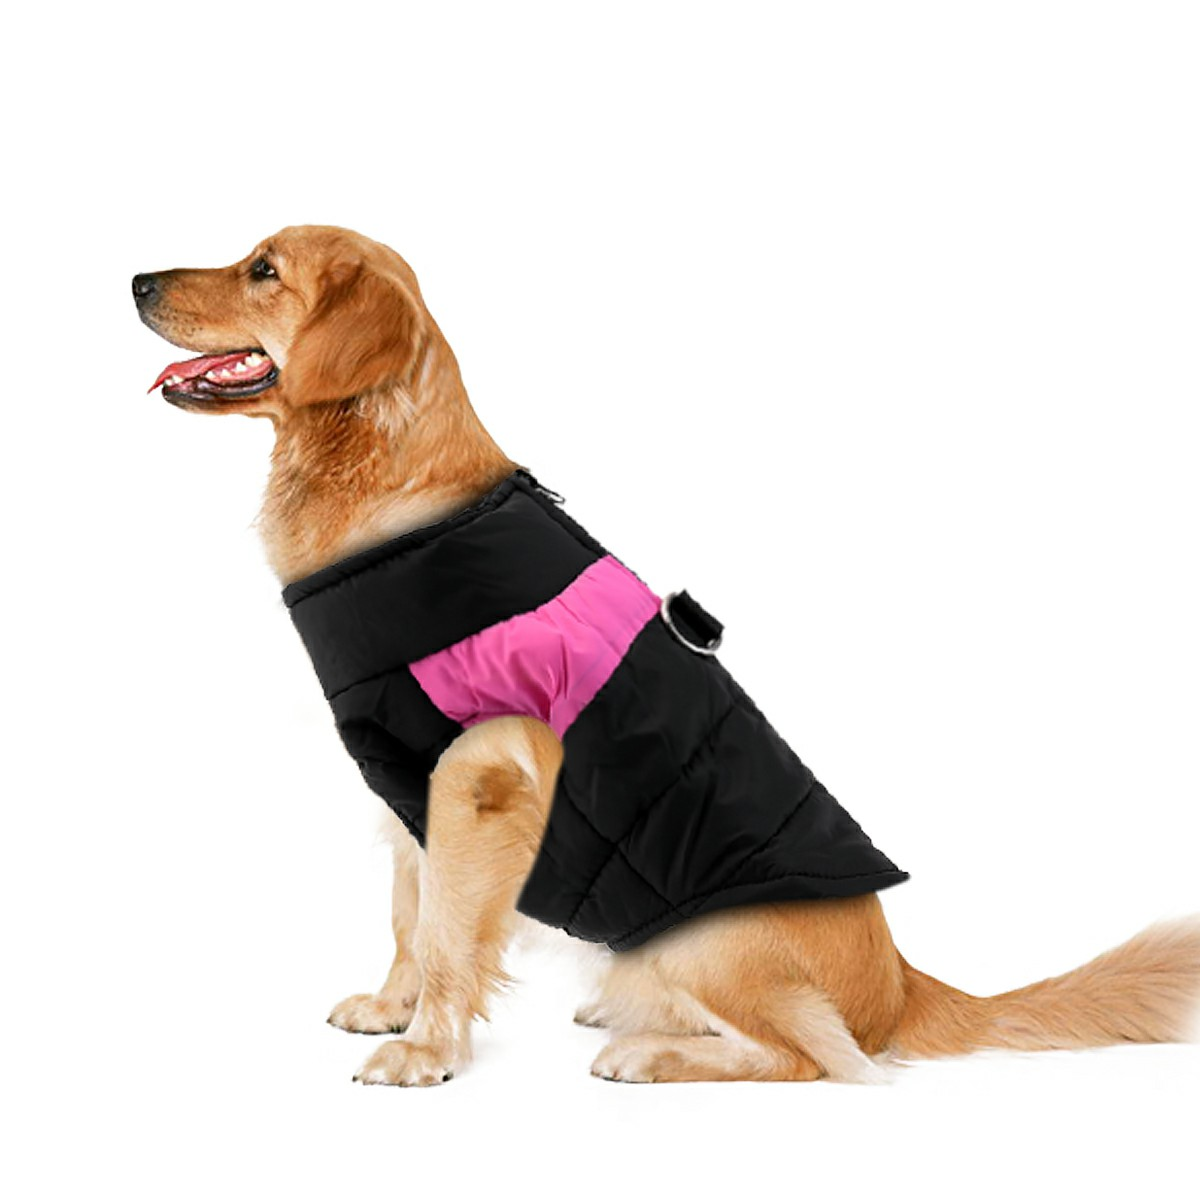 Pet Puppy Dog Warm Insulated Padded Coat Thick Winter Puffer Jacket Vest for Pets Size M - Pink